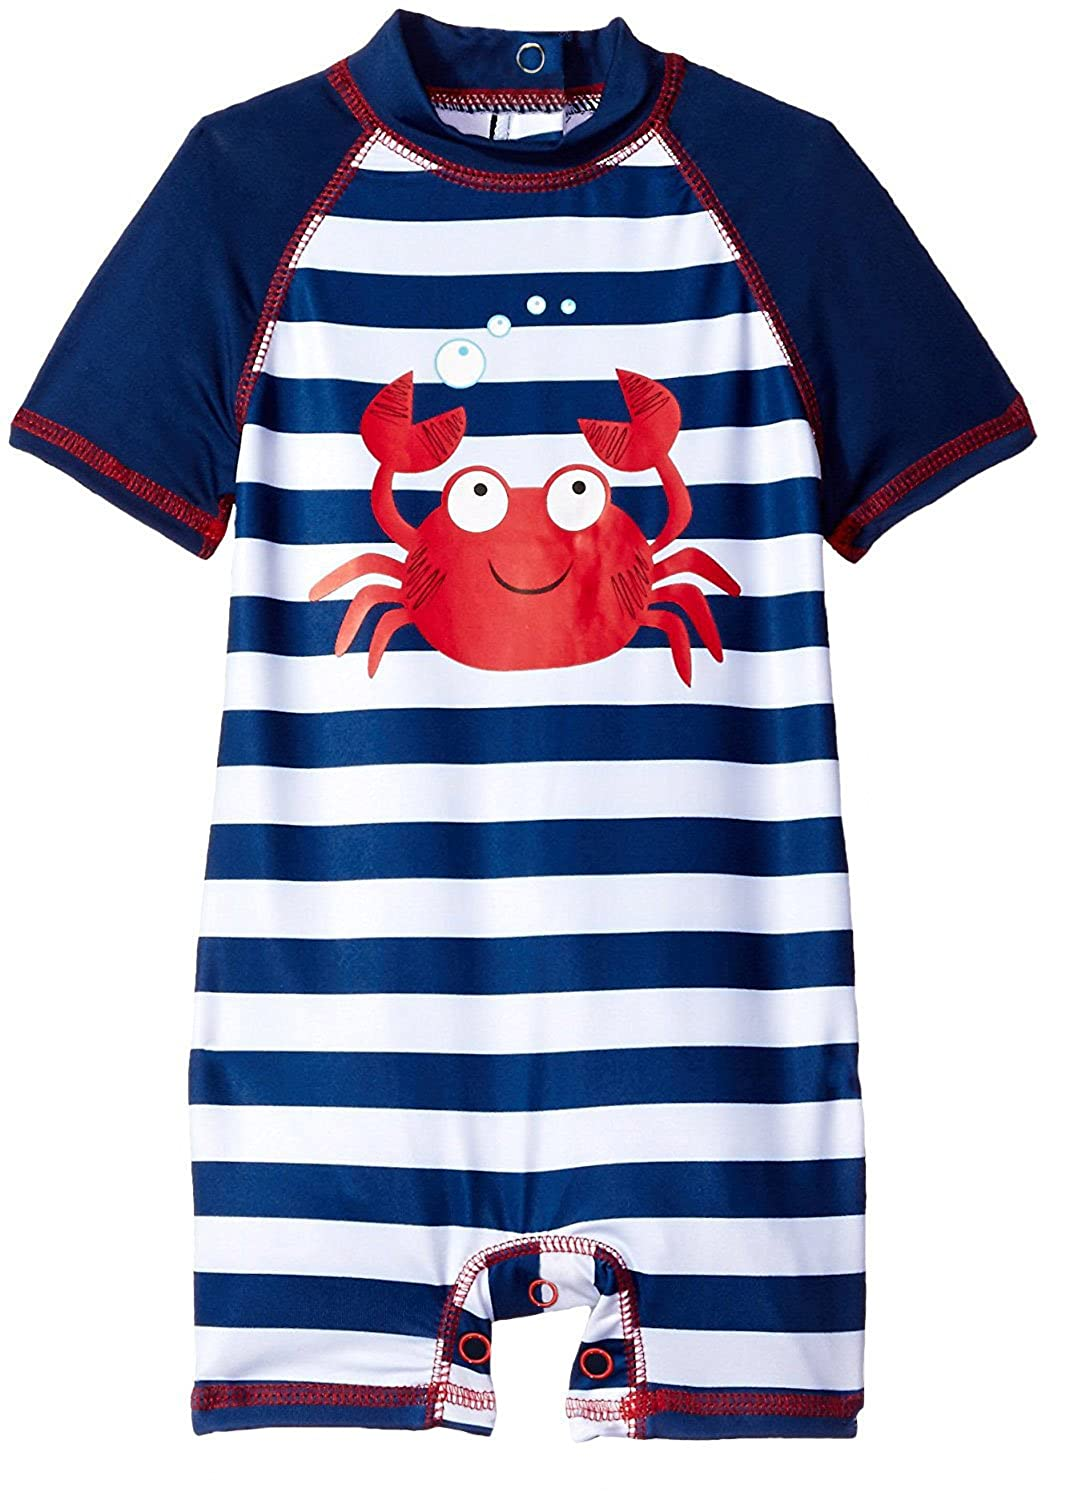 Wippette Baby Boys Swimwear Navy Stripes Cute Crabby 1-Piece Rashguard Swimsuit, Navy, 18 Months